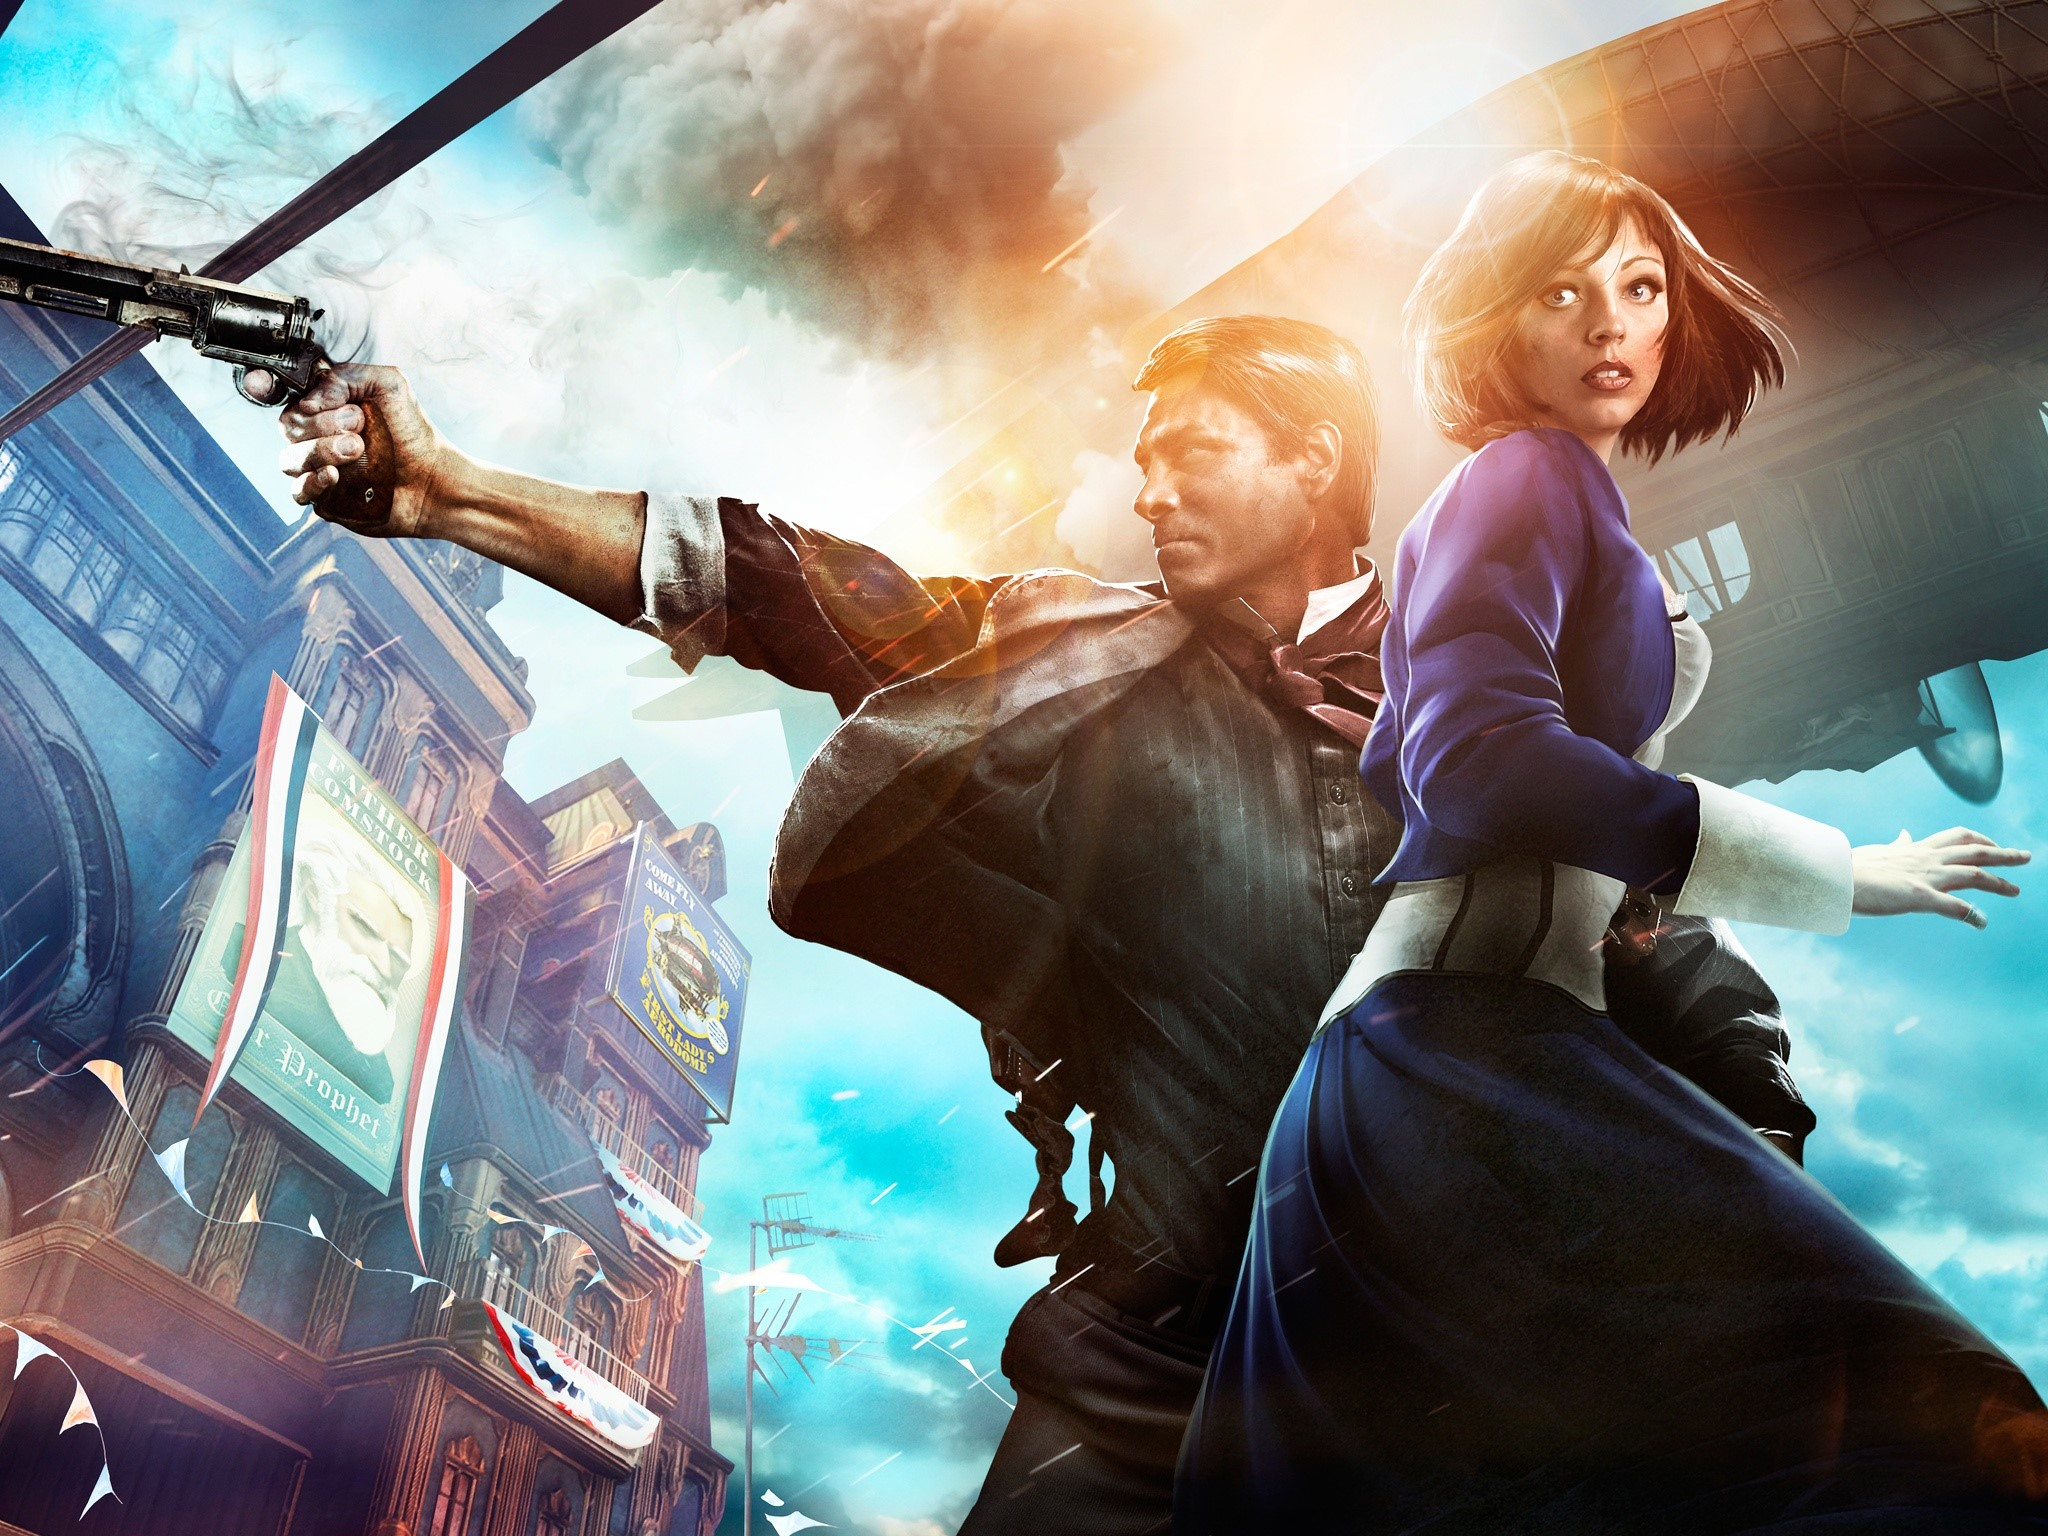 Wallpaper Juego Bioshock Infinite Images